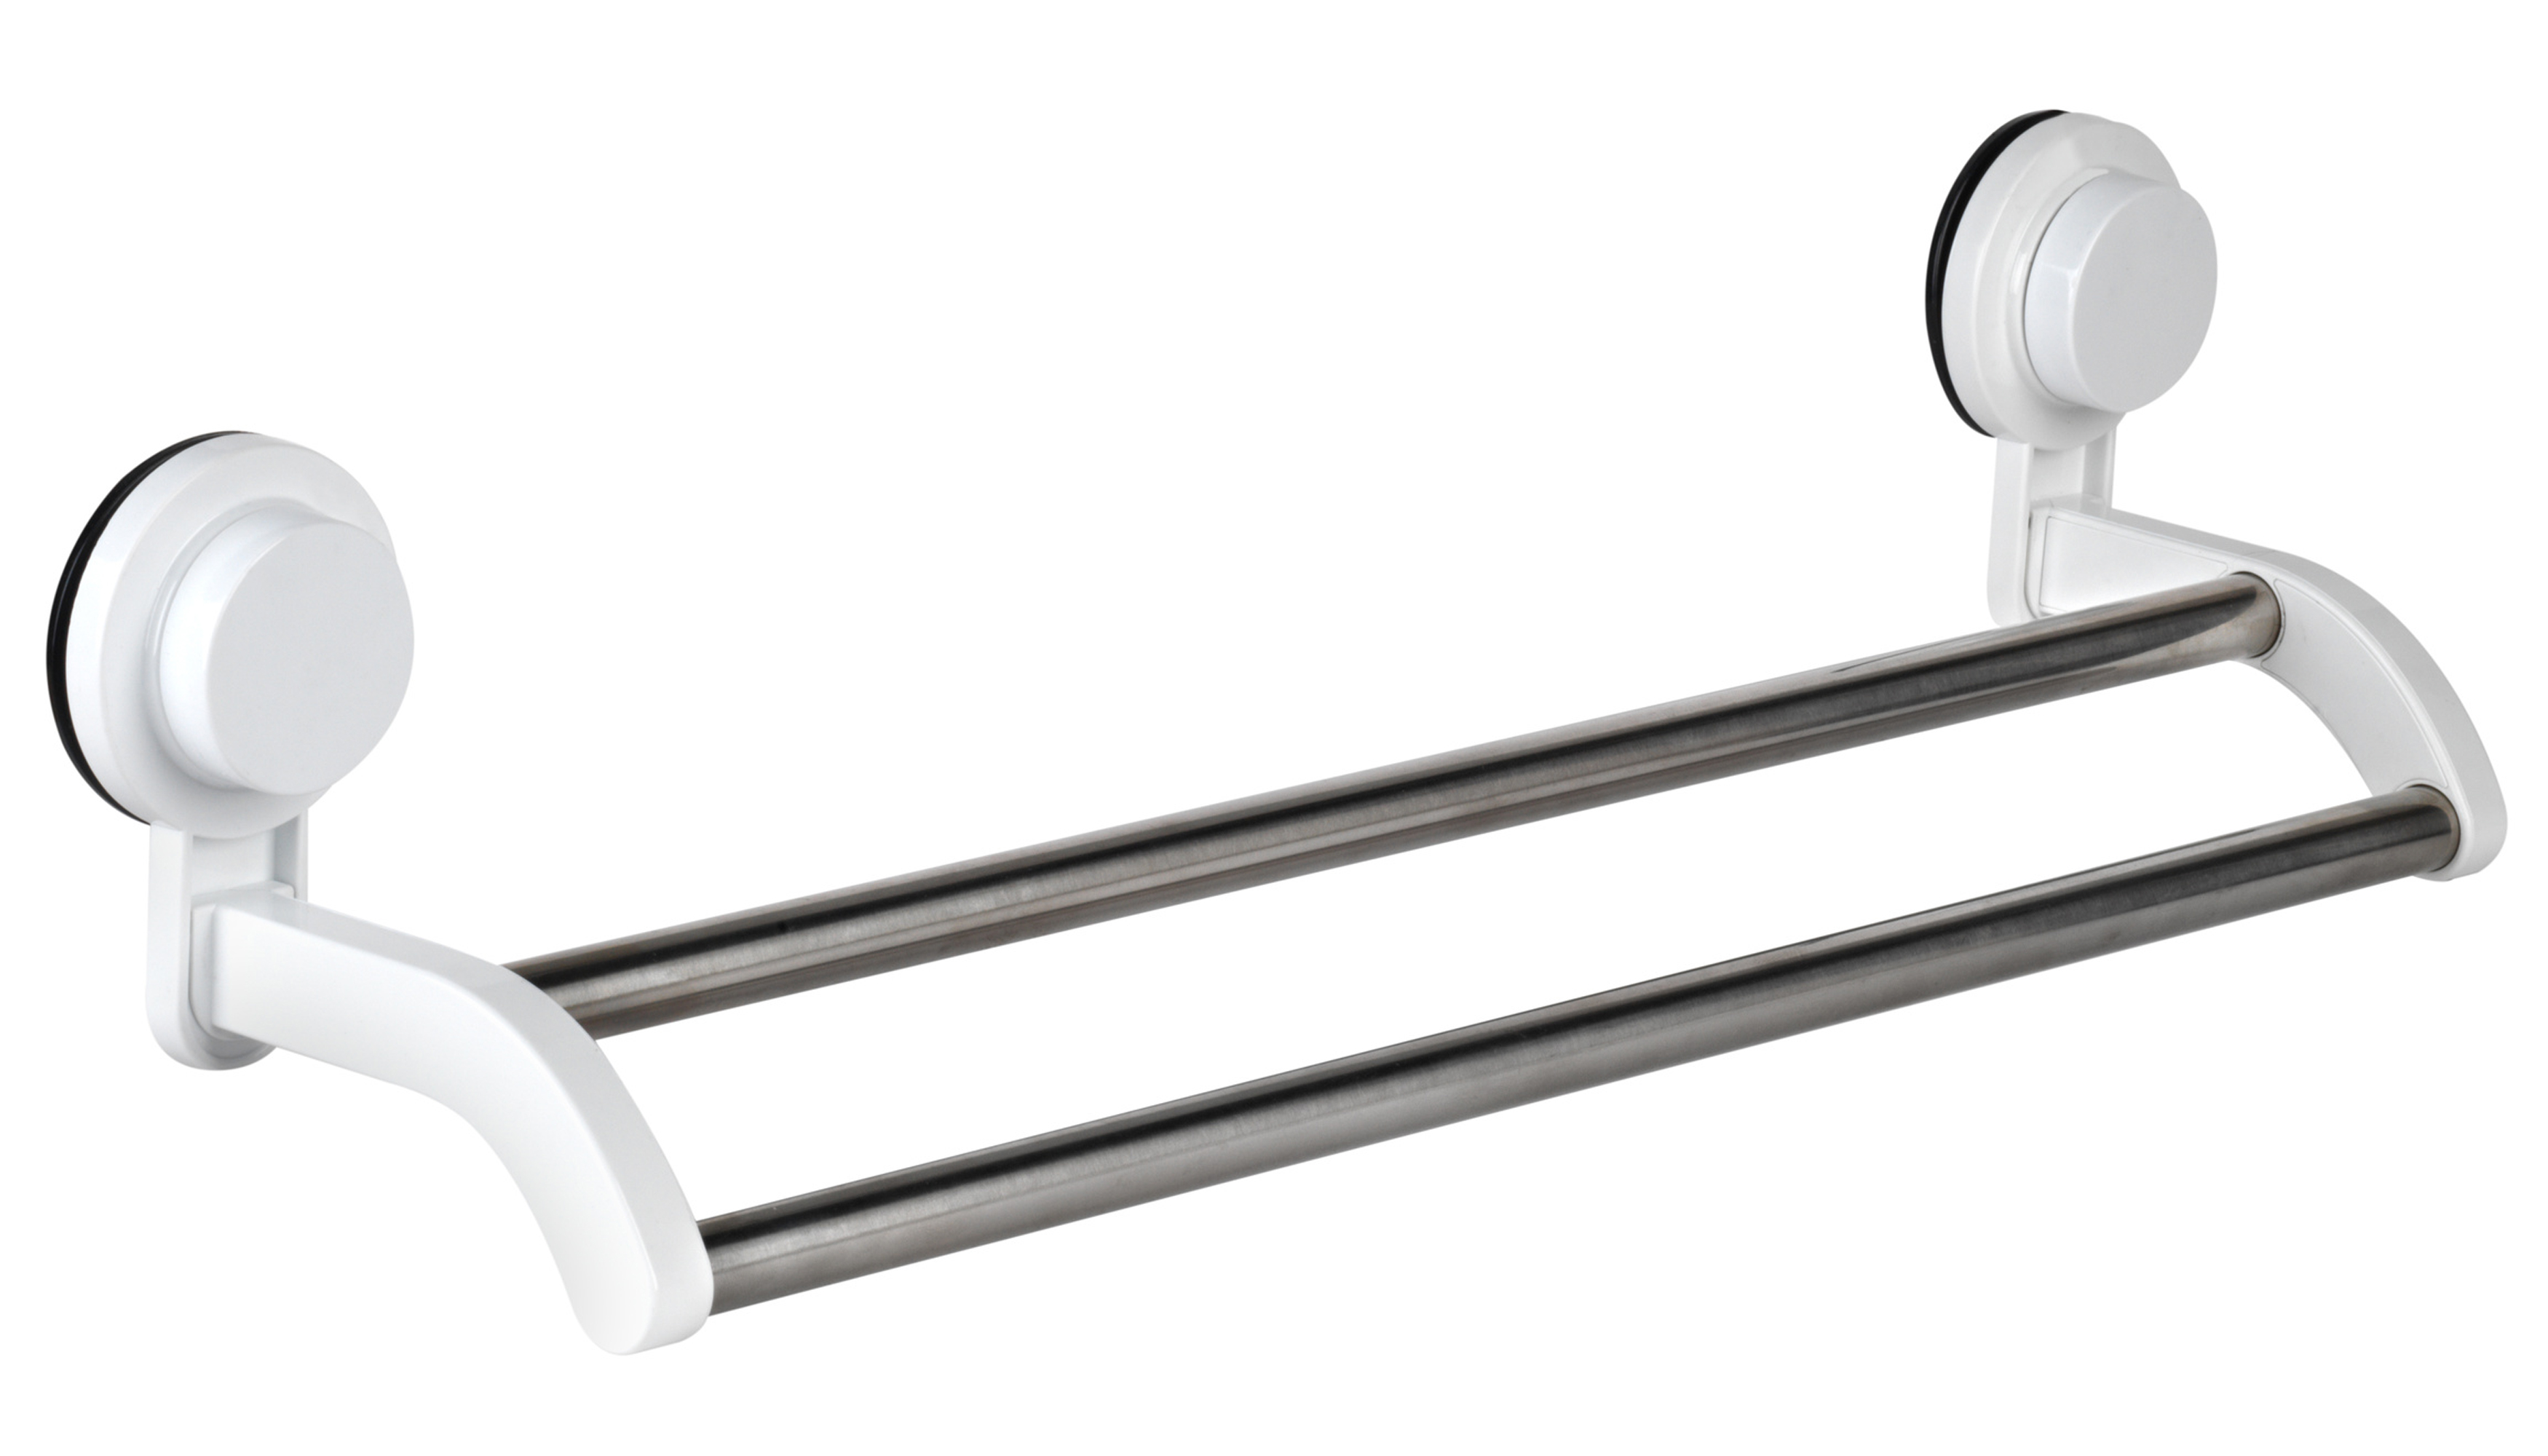 Beldray la046512 suction double towel rail rack bathroom for Rack for bathroom accessories